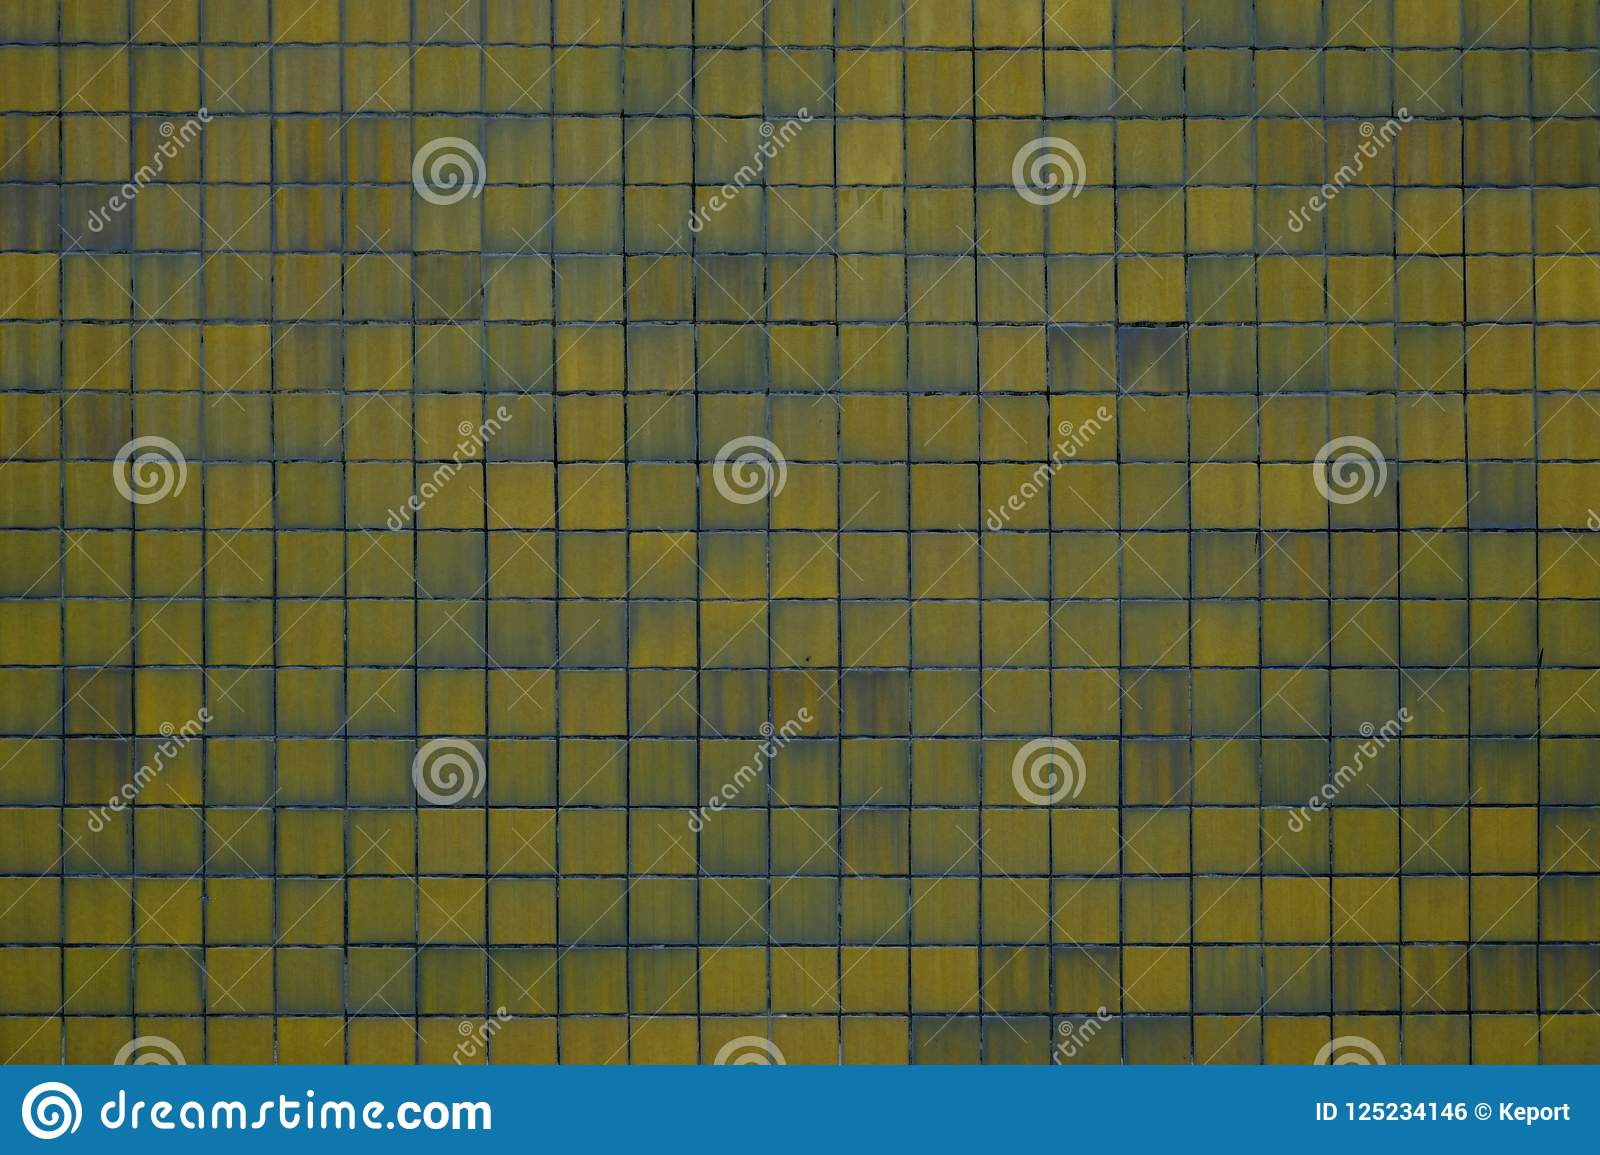 Yellow tiles background